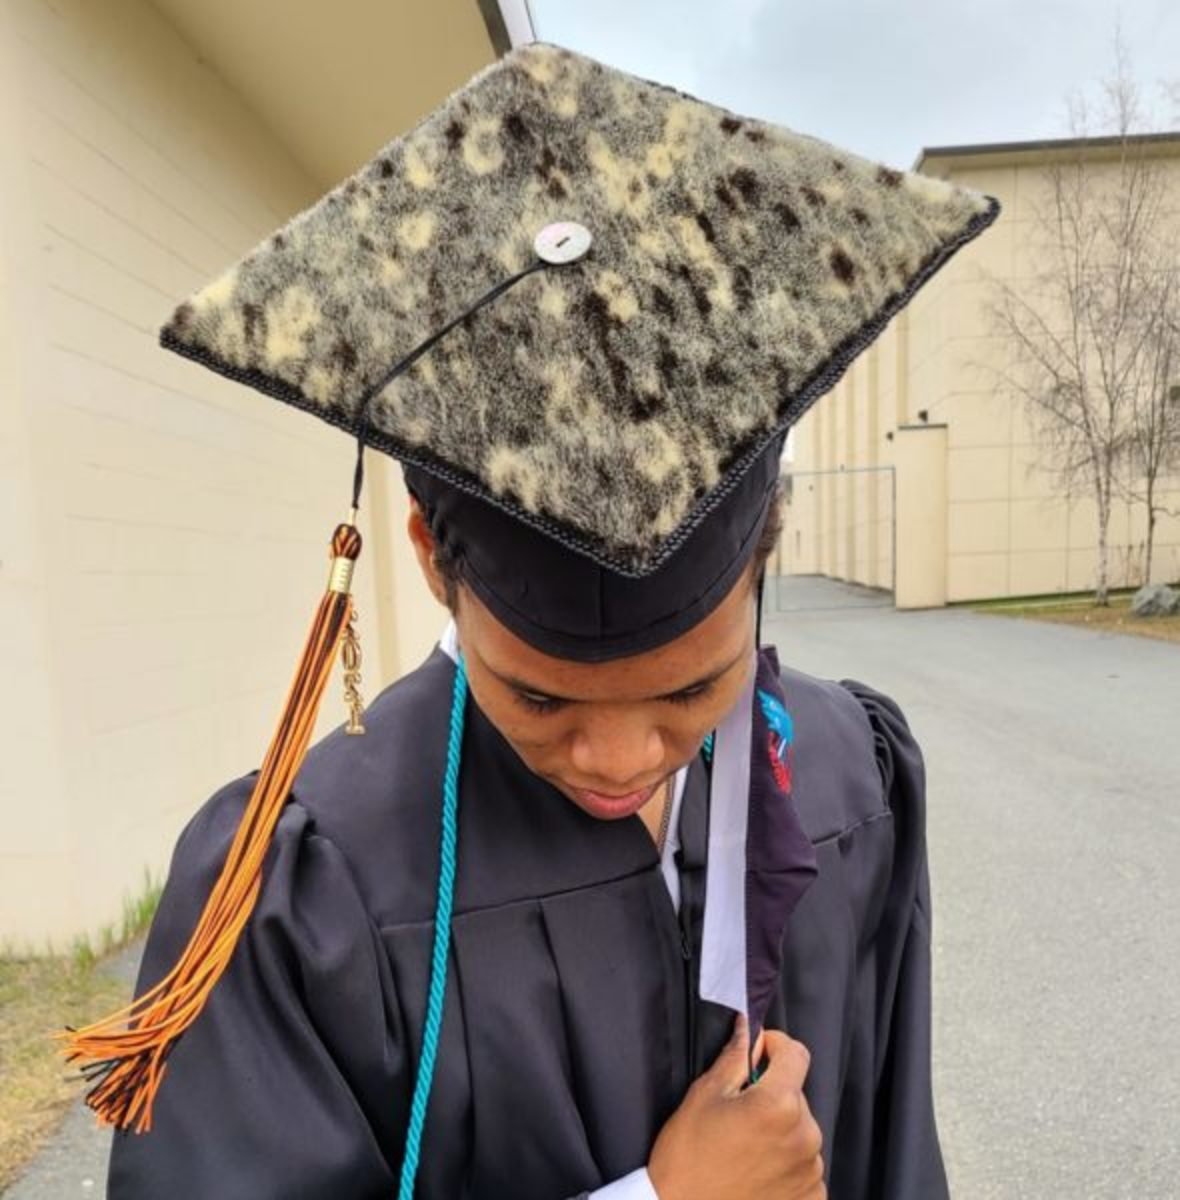 Ayyu Qassataq's son, David Paoli graduated from West High School. He was not allowed to wear his sealskin graduation cap, instead he was forced to wear a standard graduation cap. (Courtesy Ayyu Qassataq)